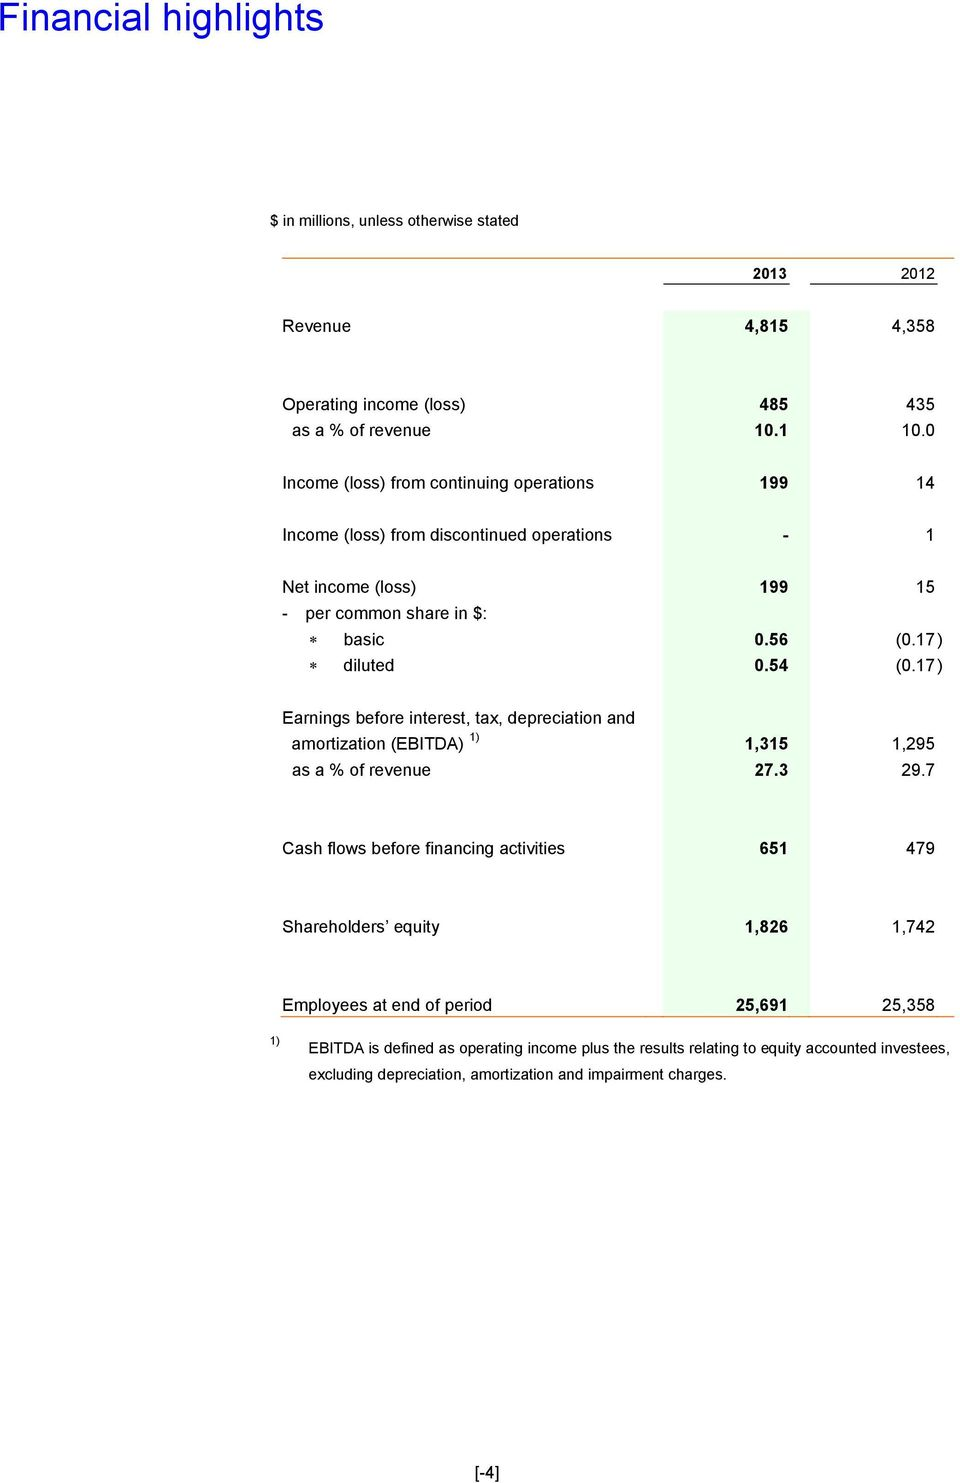 17 ) Earnings before interest, tax, depreciation and amortization (EBITDA) 1) 1,315 1,295 as a % of revenue 27.3 29.